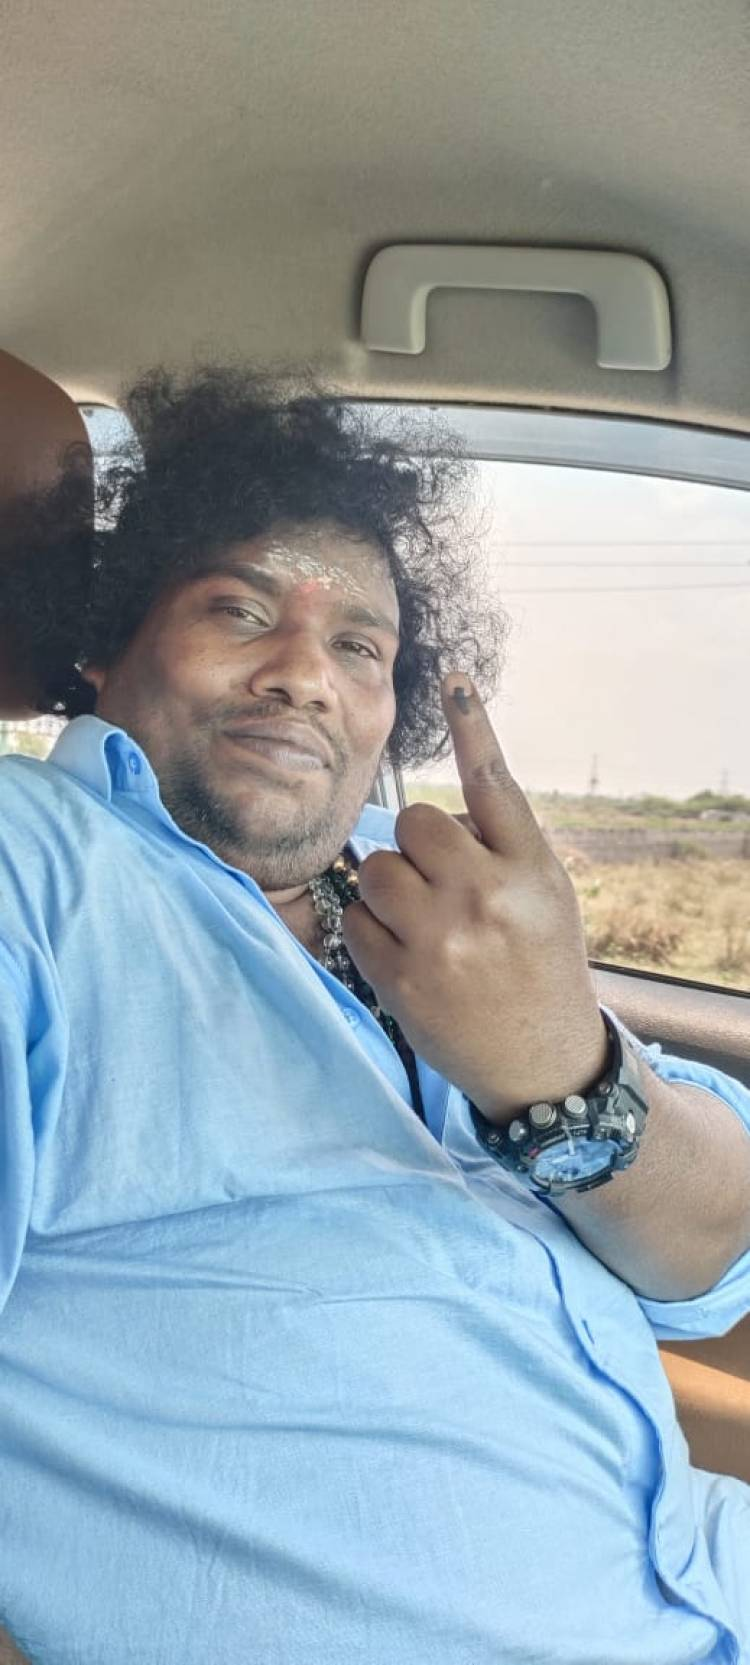 Actor @iYogiBabu casts his vote.  #TamilNaduElections2021 #AssemblyElections2021